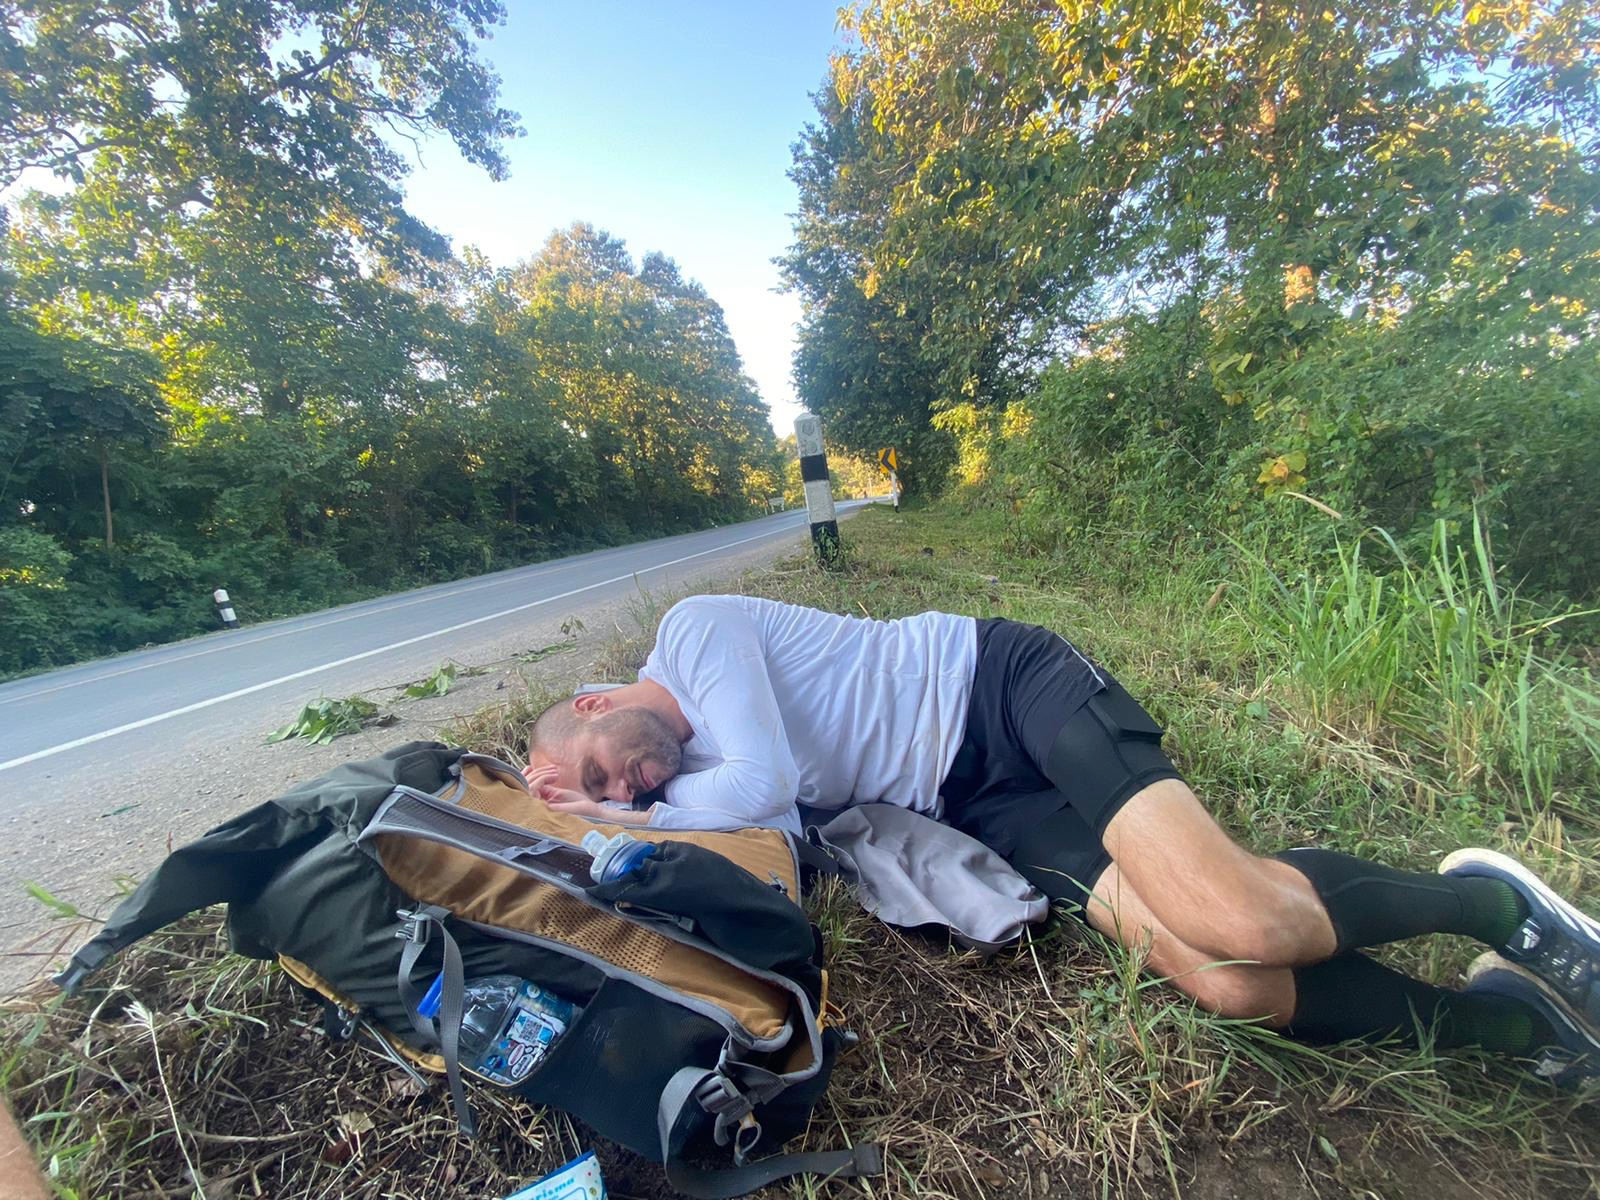 Sleeping by the road